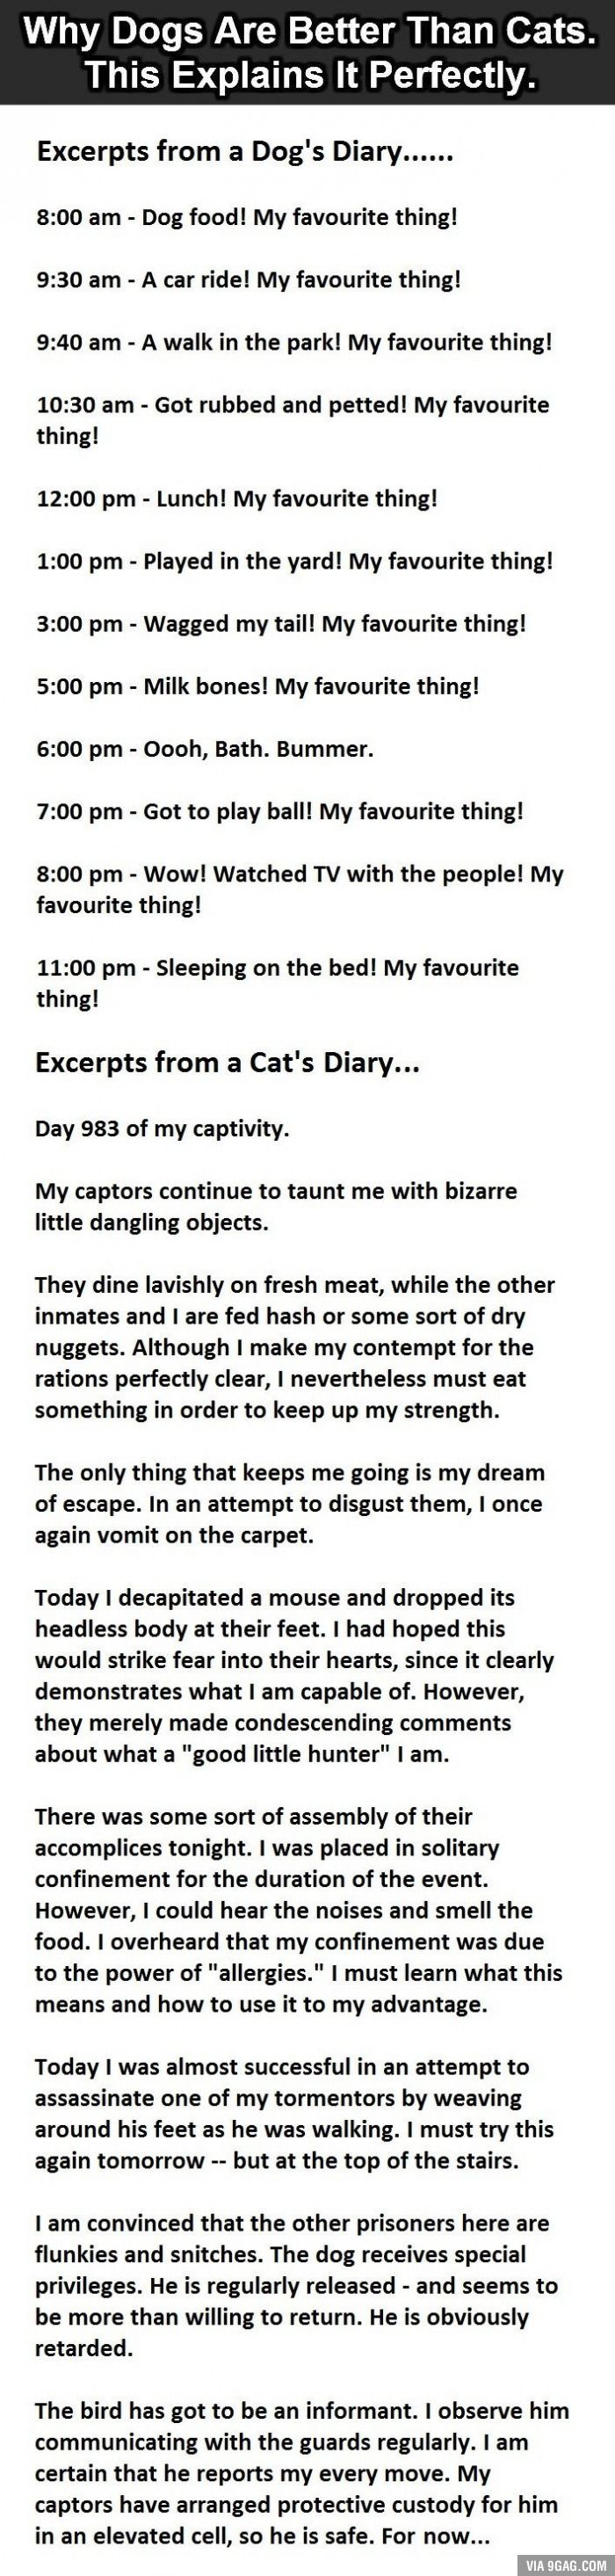 Why Dogs Are Better Than Cats. This Is So True. Cat